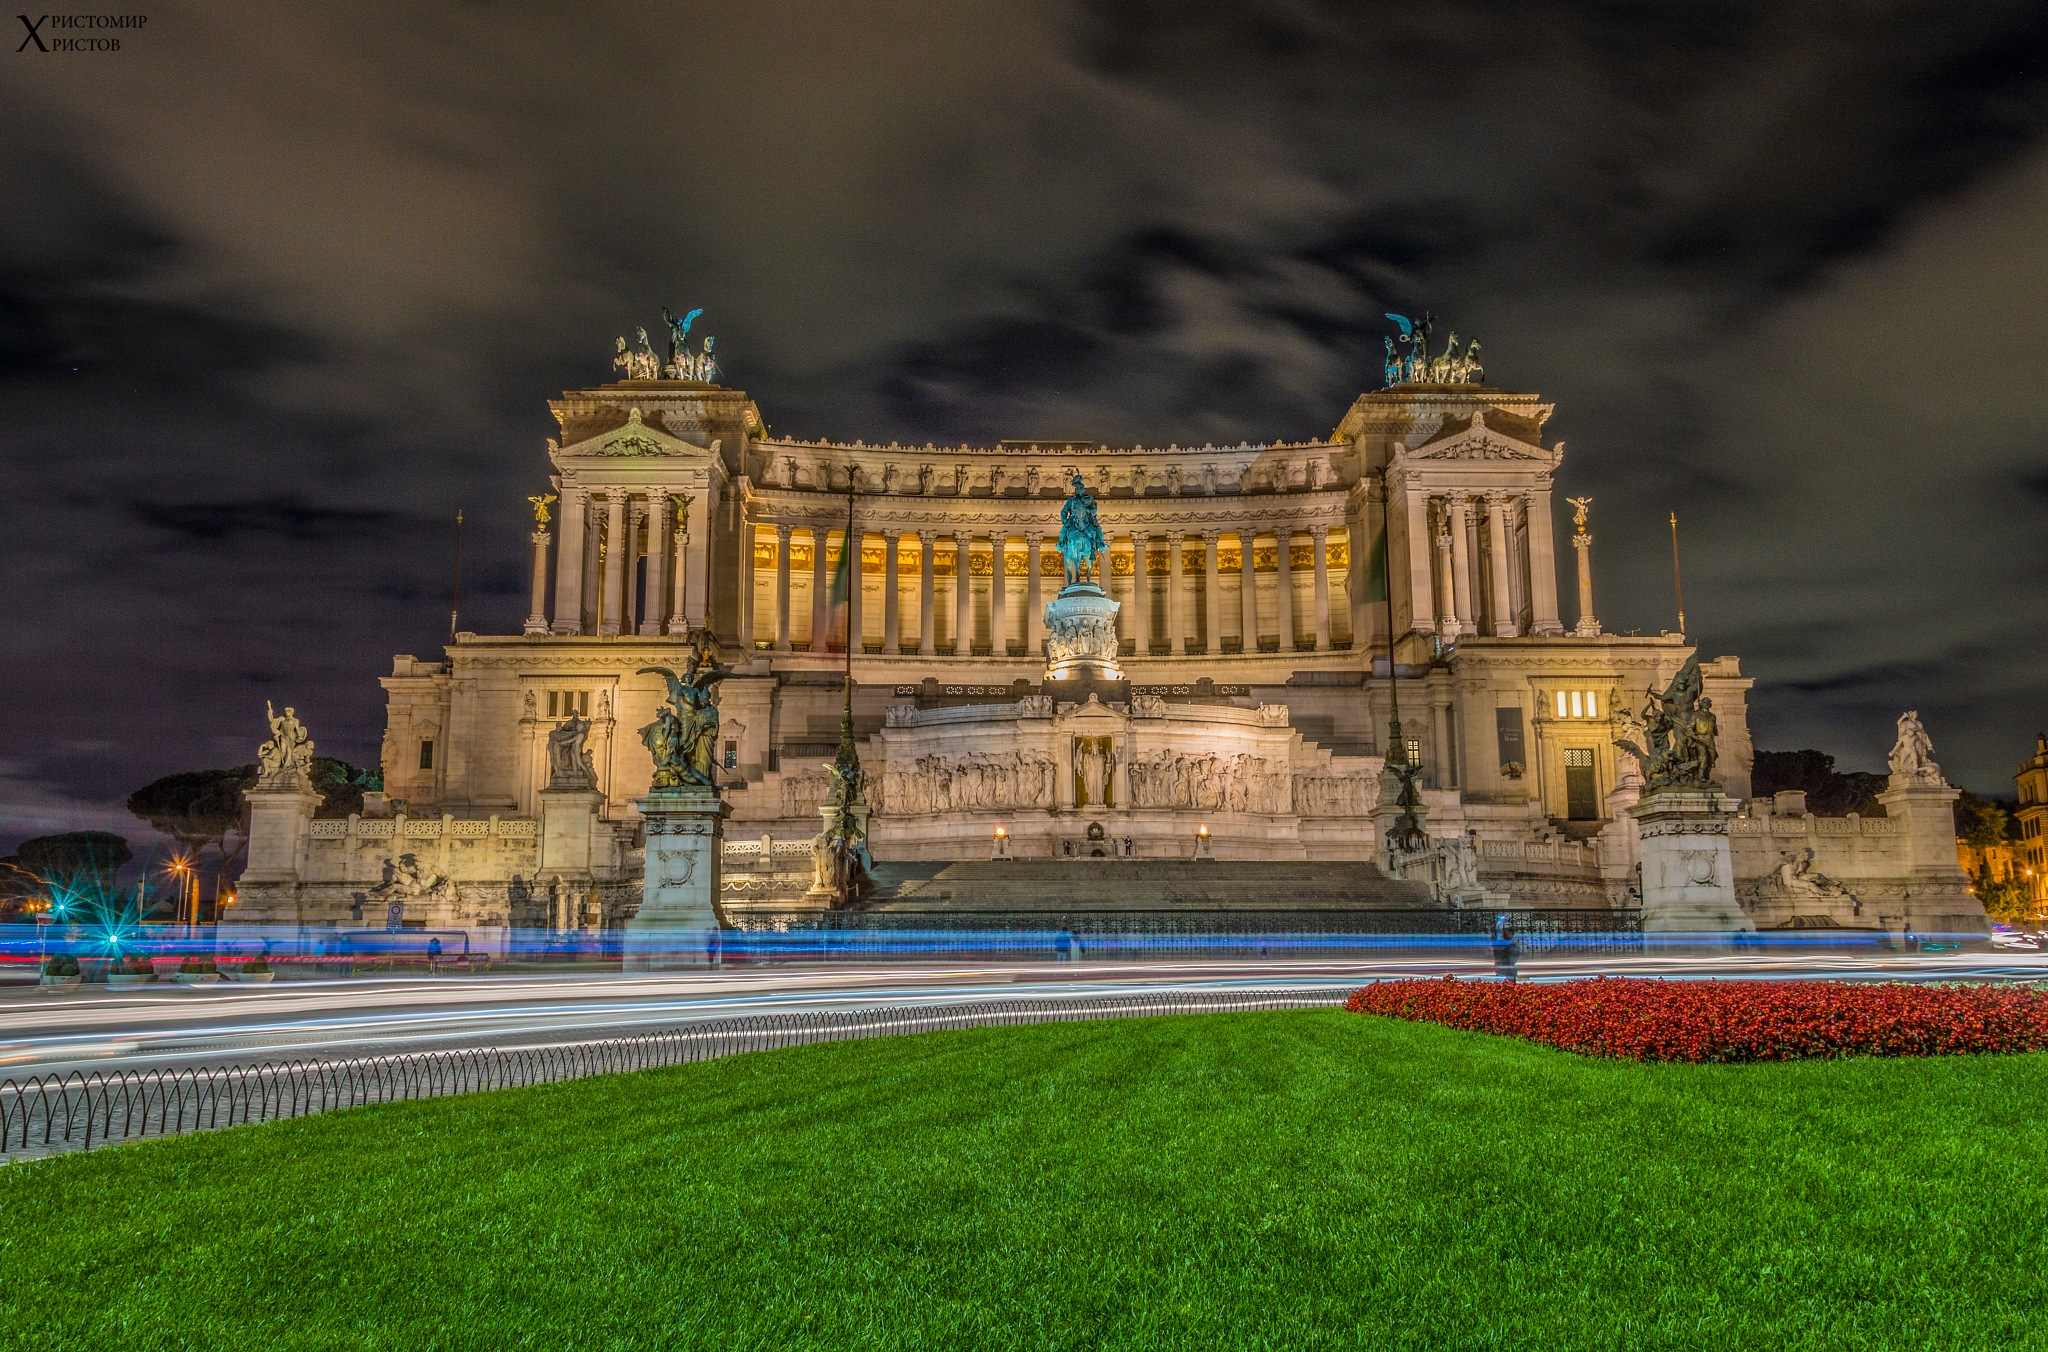 National Monument to Victor Emmanuel II part II by Hristomir Hristov